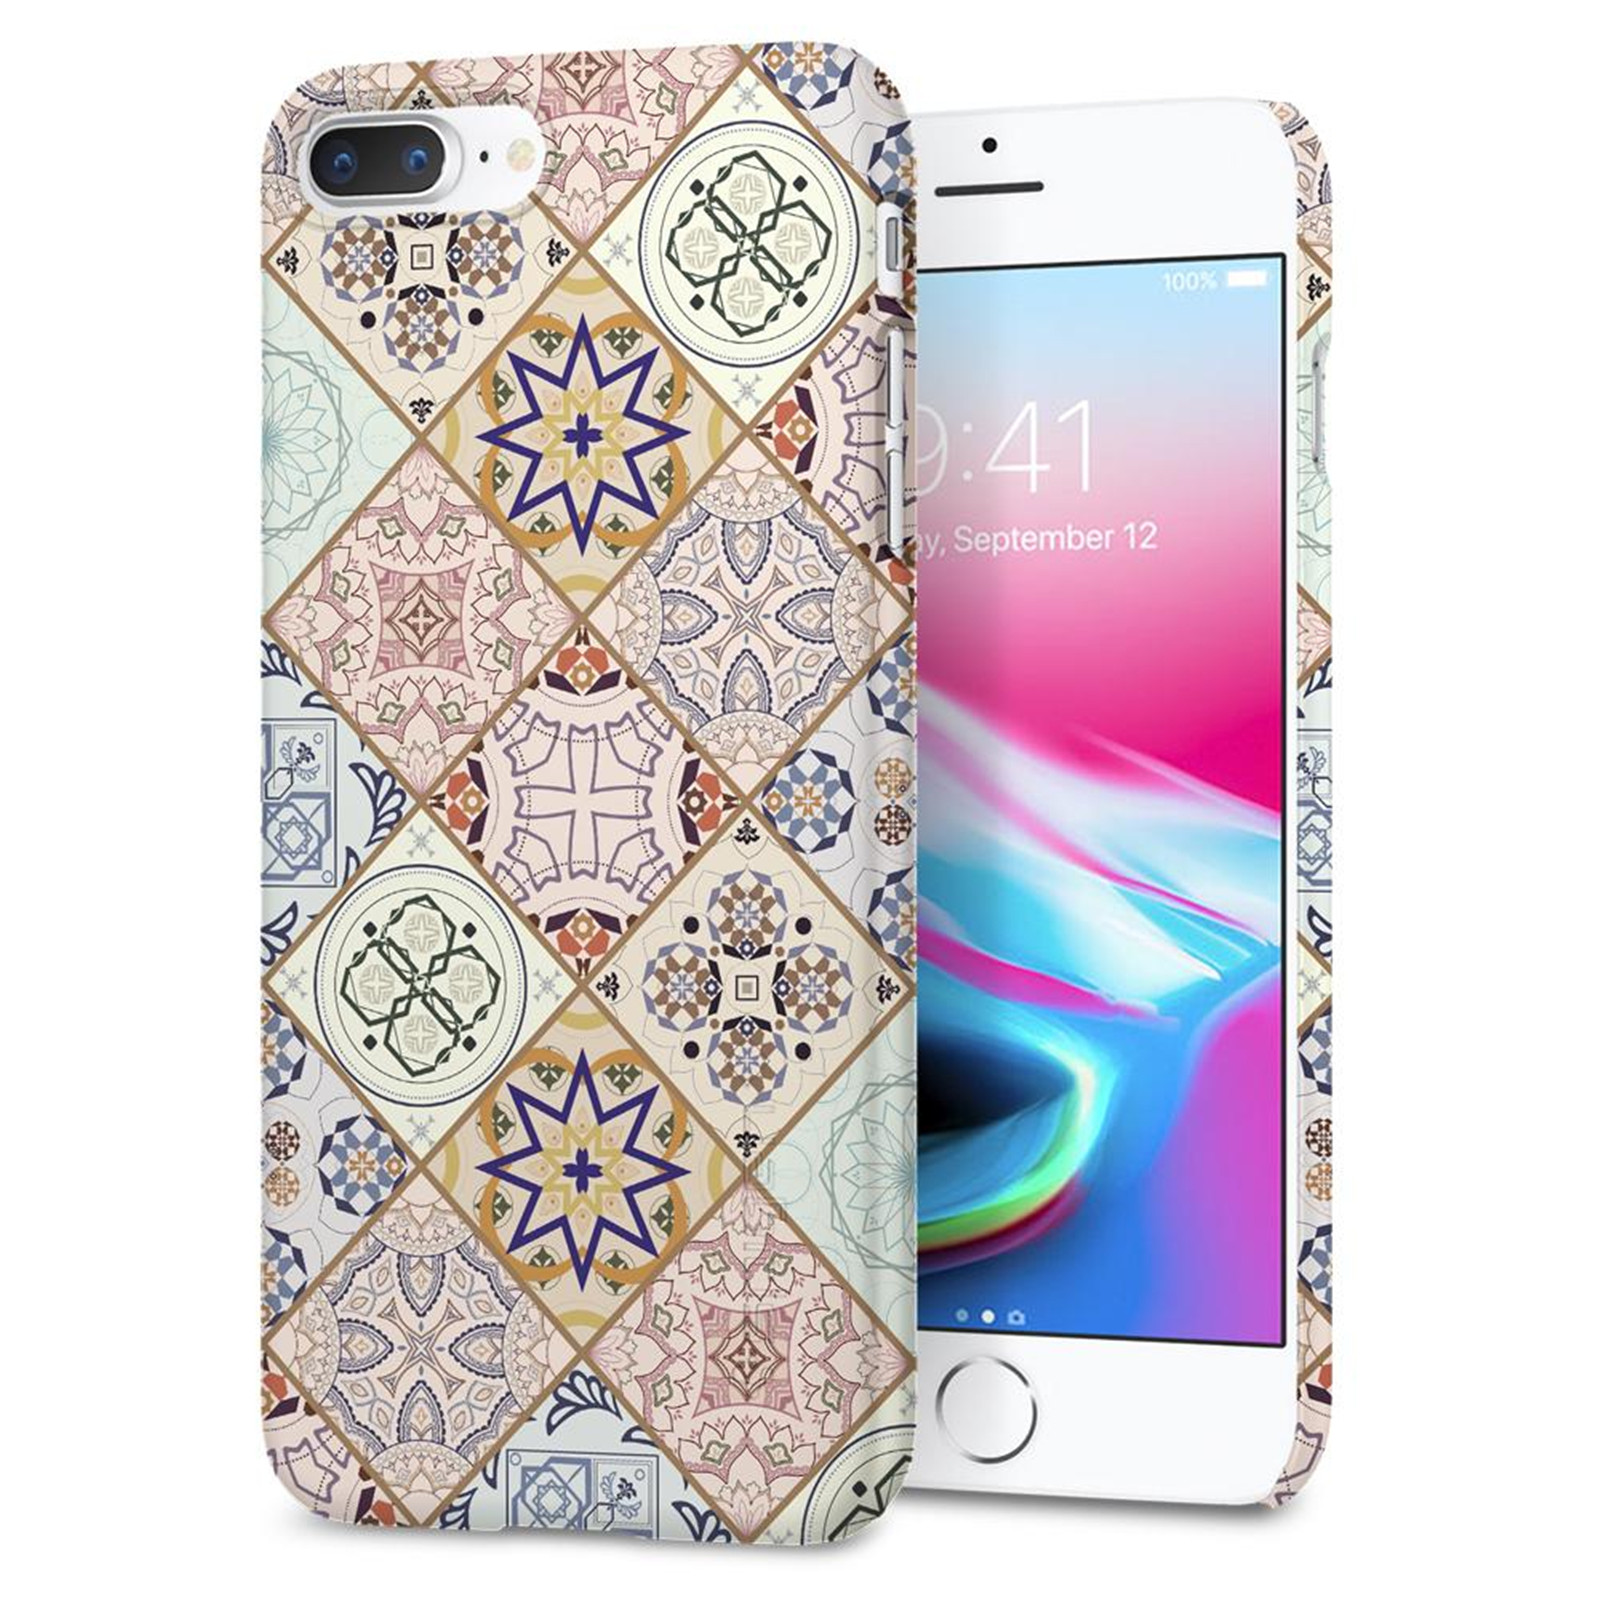 Buy The Spigen Iphone 8 Plus Thin Fit Design Edition Case Arabesque Xs Simple Softcase Liquid Crystal Casing Exact Fitlight Weight Only 004lbsuper Pocket Friendly Hard 055cs22622